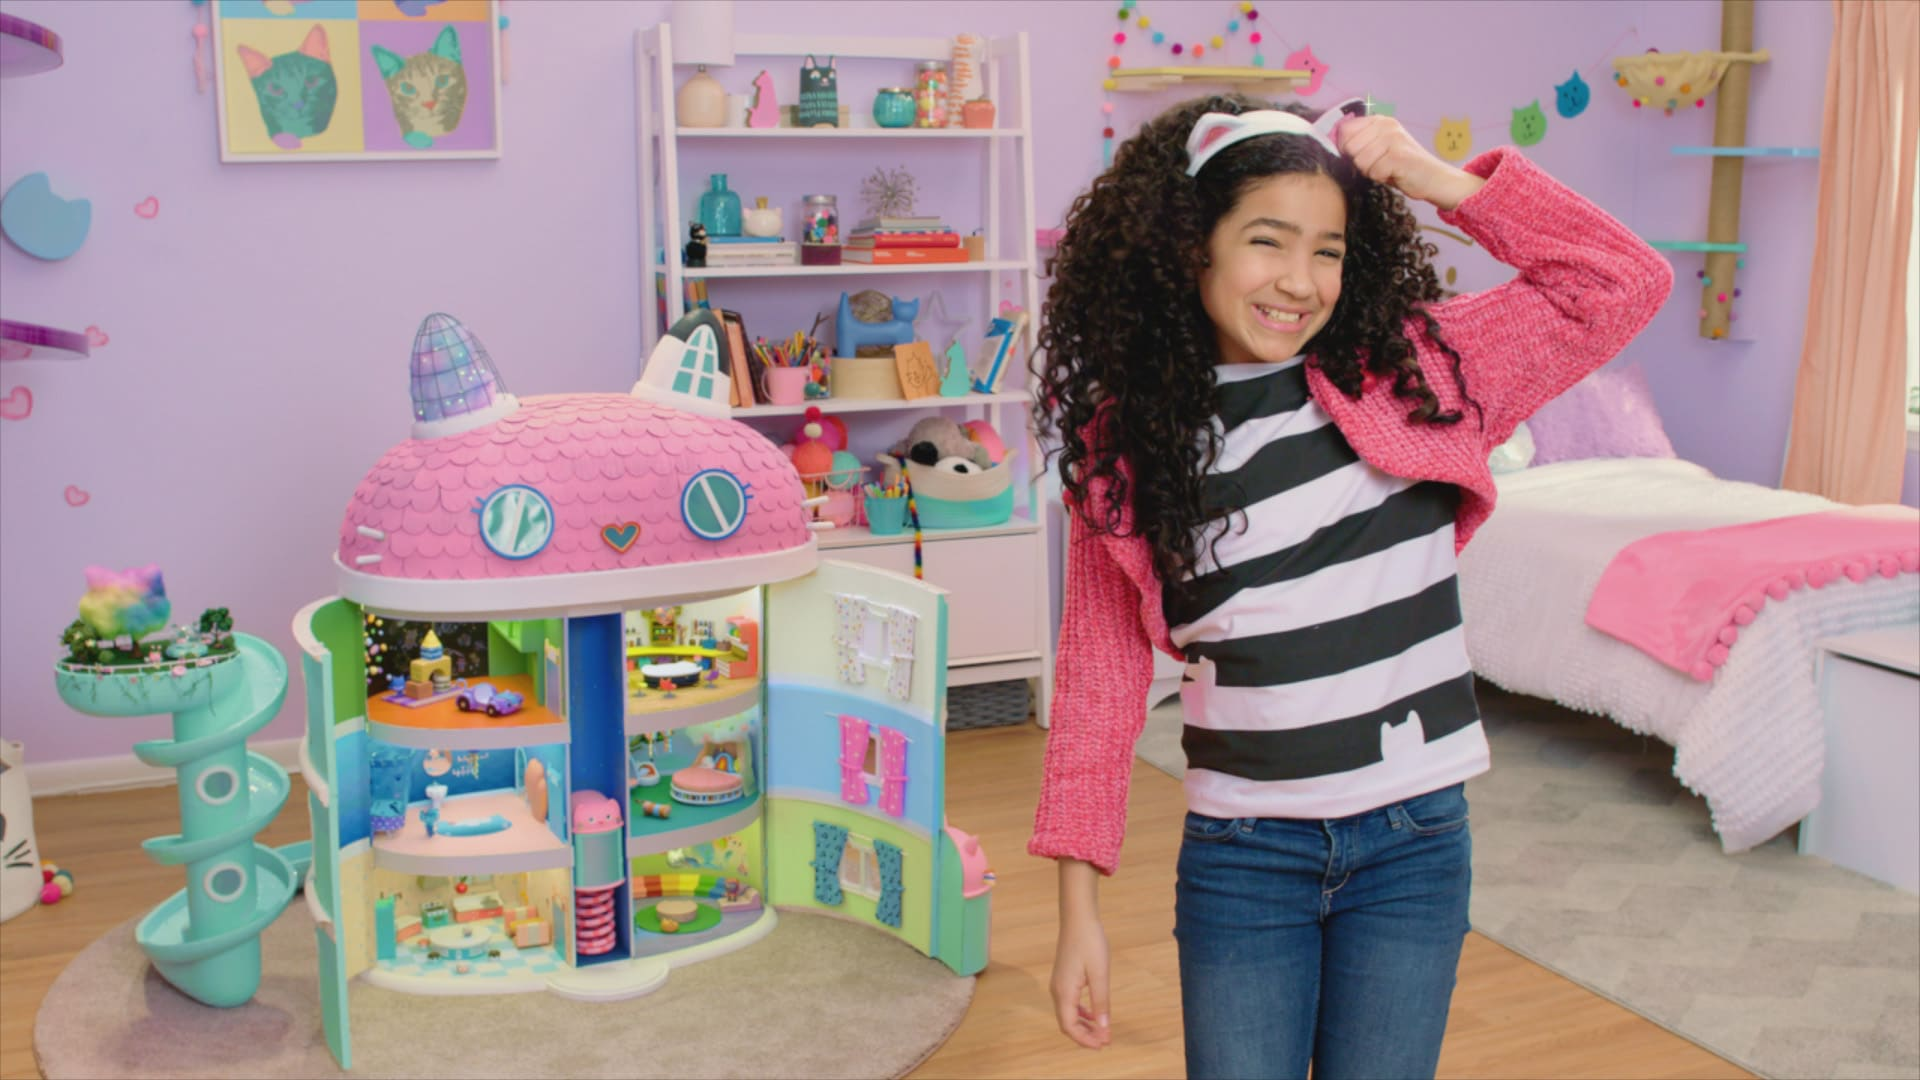 Dreamworks Gabby's Dollhouse. Welcome to Gabby's Dollhouse, the preschool show with a surprise inside! DreamWorks Gabby's Dollhouse unboxes a surprise before jumping into a fantastical animated world full of adorable cat characters that live inside Gabby's dollhouse. Any adventure can unfold when we play in Gabby's Dollhouse! Premiering on Netflix January 5th, 2021.